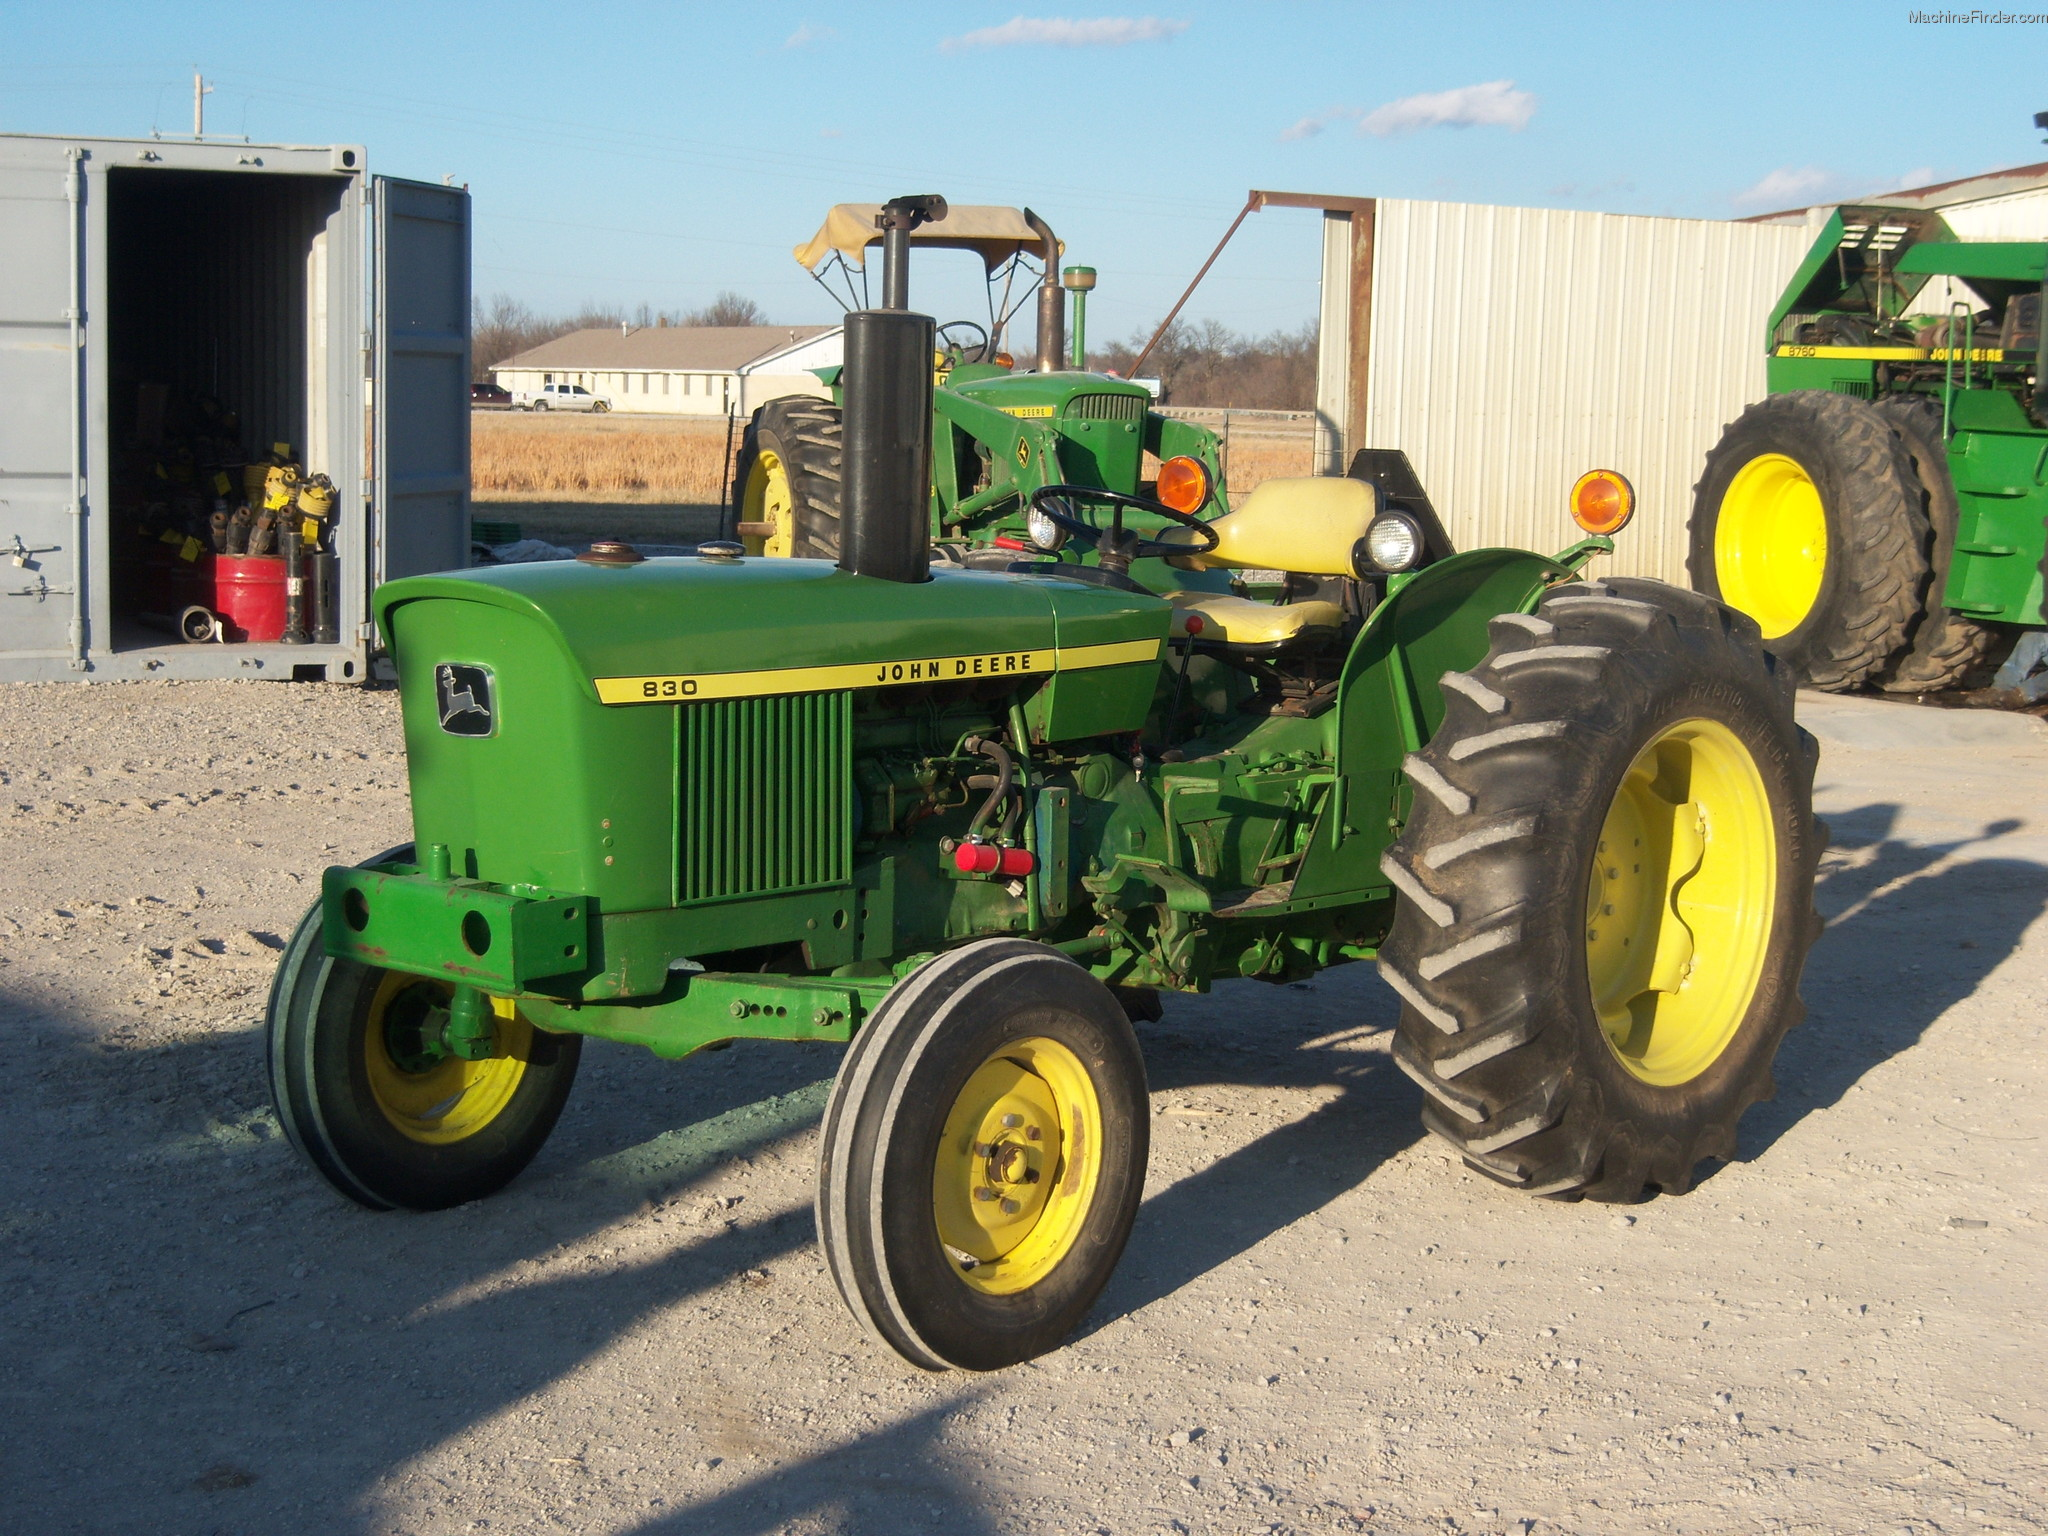 minnesota couple displays passion for john deere tractors. Black Bedroom Furniture Sets. Home Design Ideas